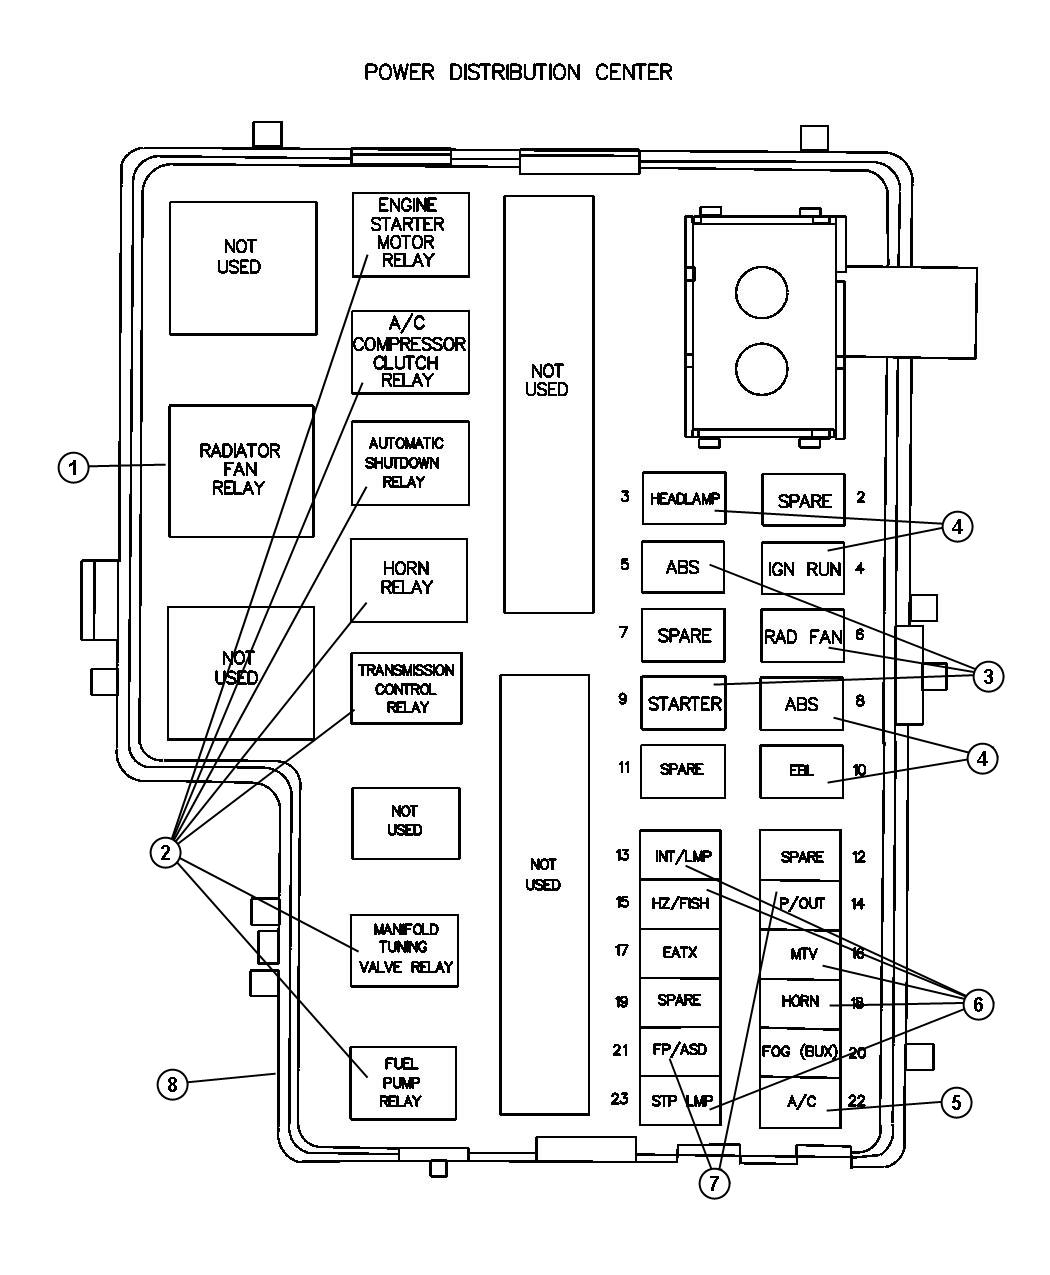 2001 dodge stratus radio wiring diagram images 2001 dodge stratus dodge neon fuse box diagram in